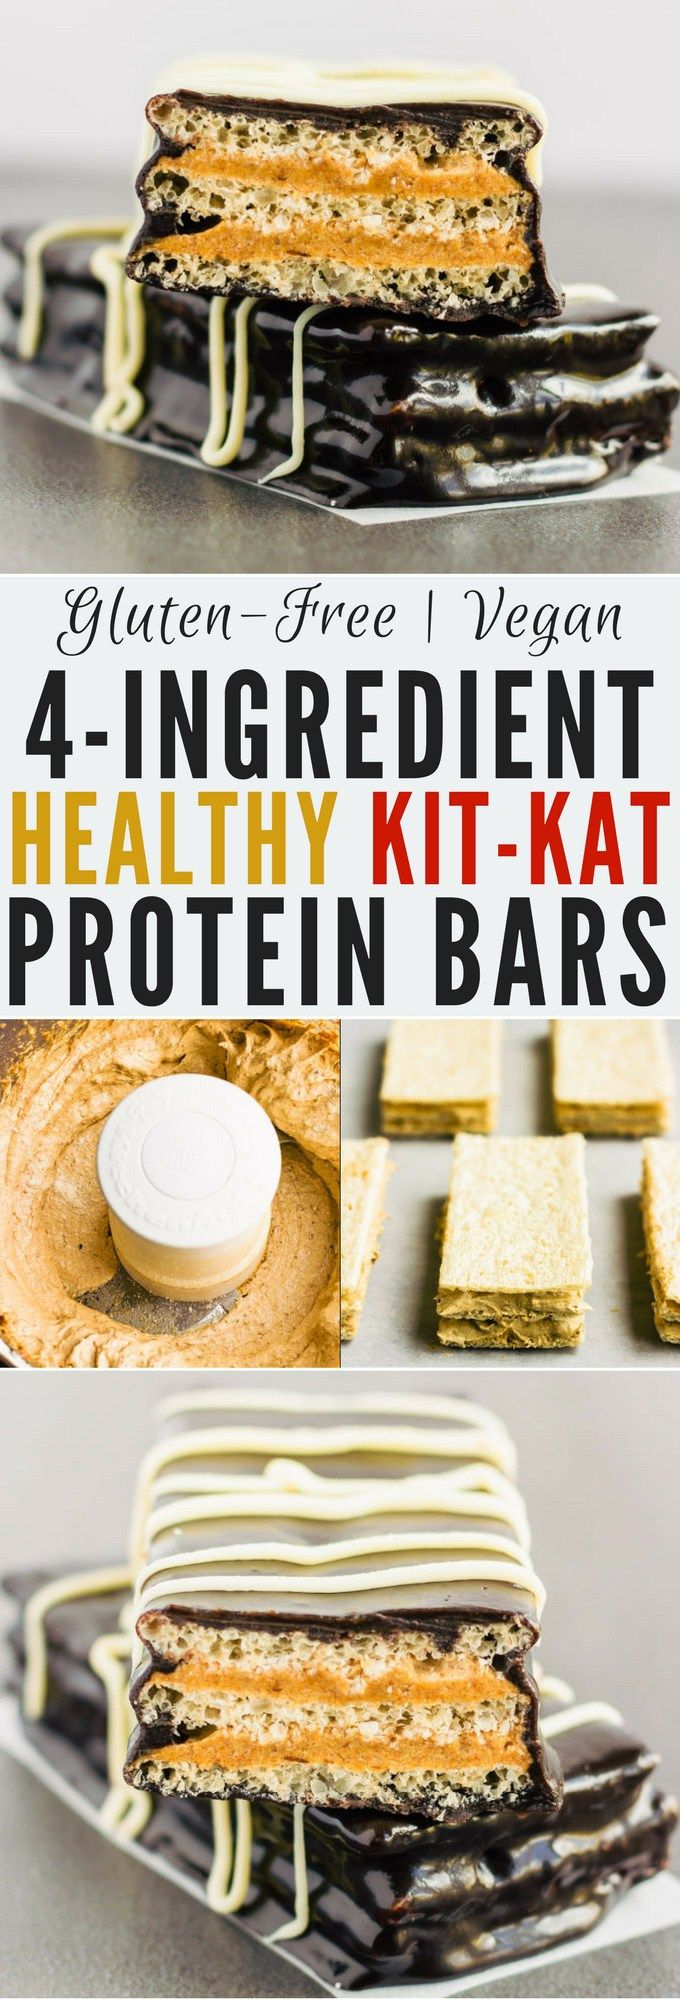 These healthy & homemade kit kat protein bars are easy to make and require only 4 simple ingredients. These extra crunchy, no-bake protein treats are the perfect post-workout snack. They are entirely gluten-free, vegan, dairy-free, egg-free, flourless and nut-free.   onecleverchef.com